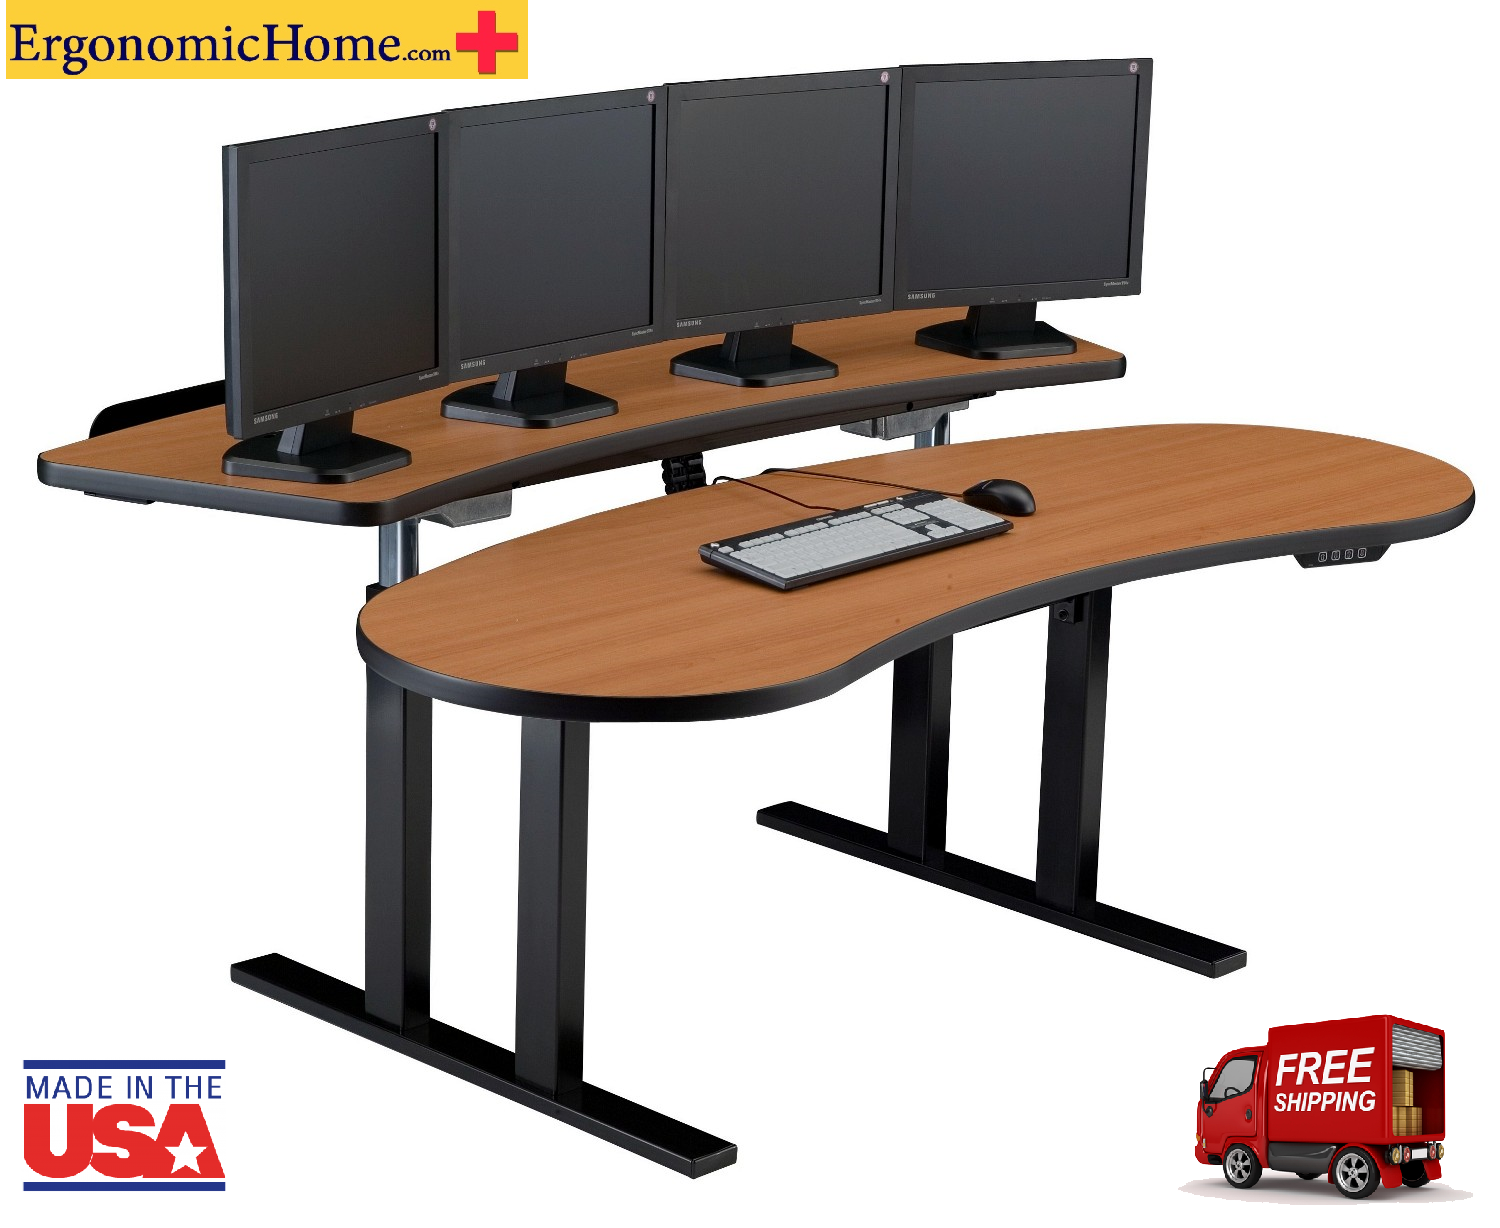 orig product dl workfit products desk en details up standing us adjustable ergotron height stand